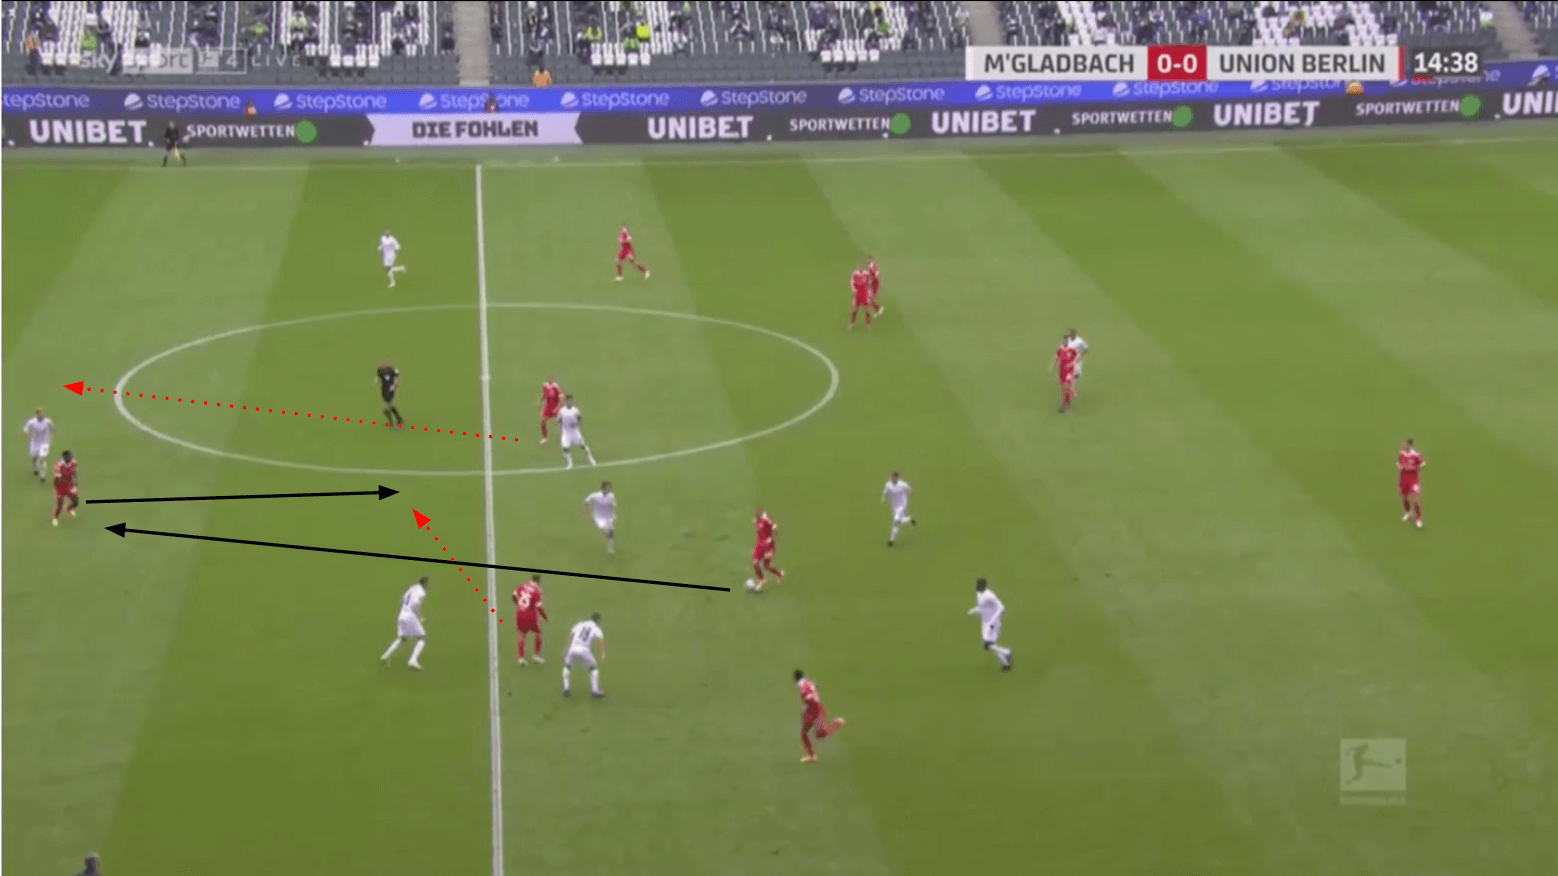 Bundesliga 2020/21: Borussia Mönchengladbach vs Union Berlin - tactical analysis tactics